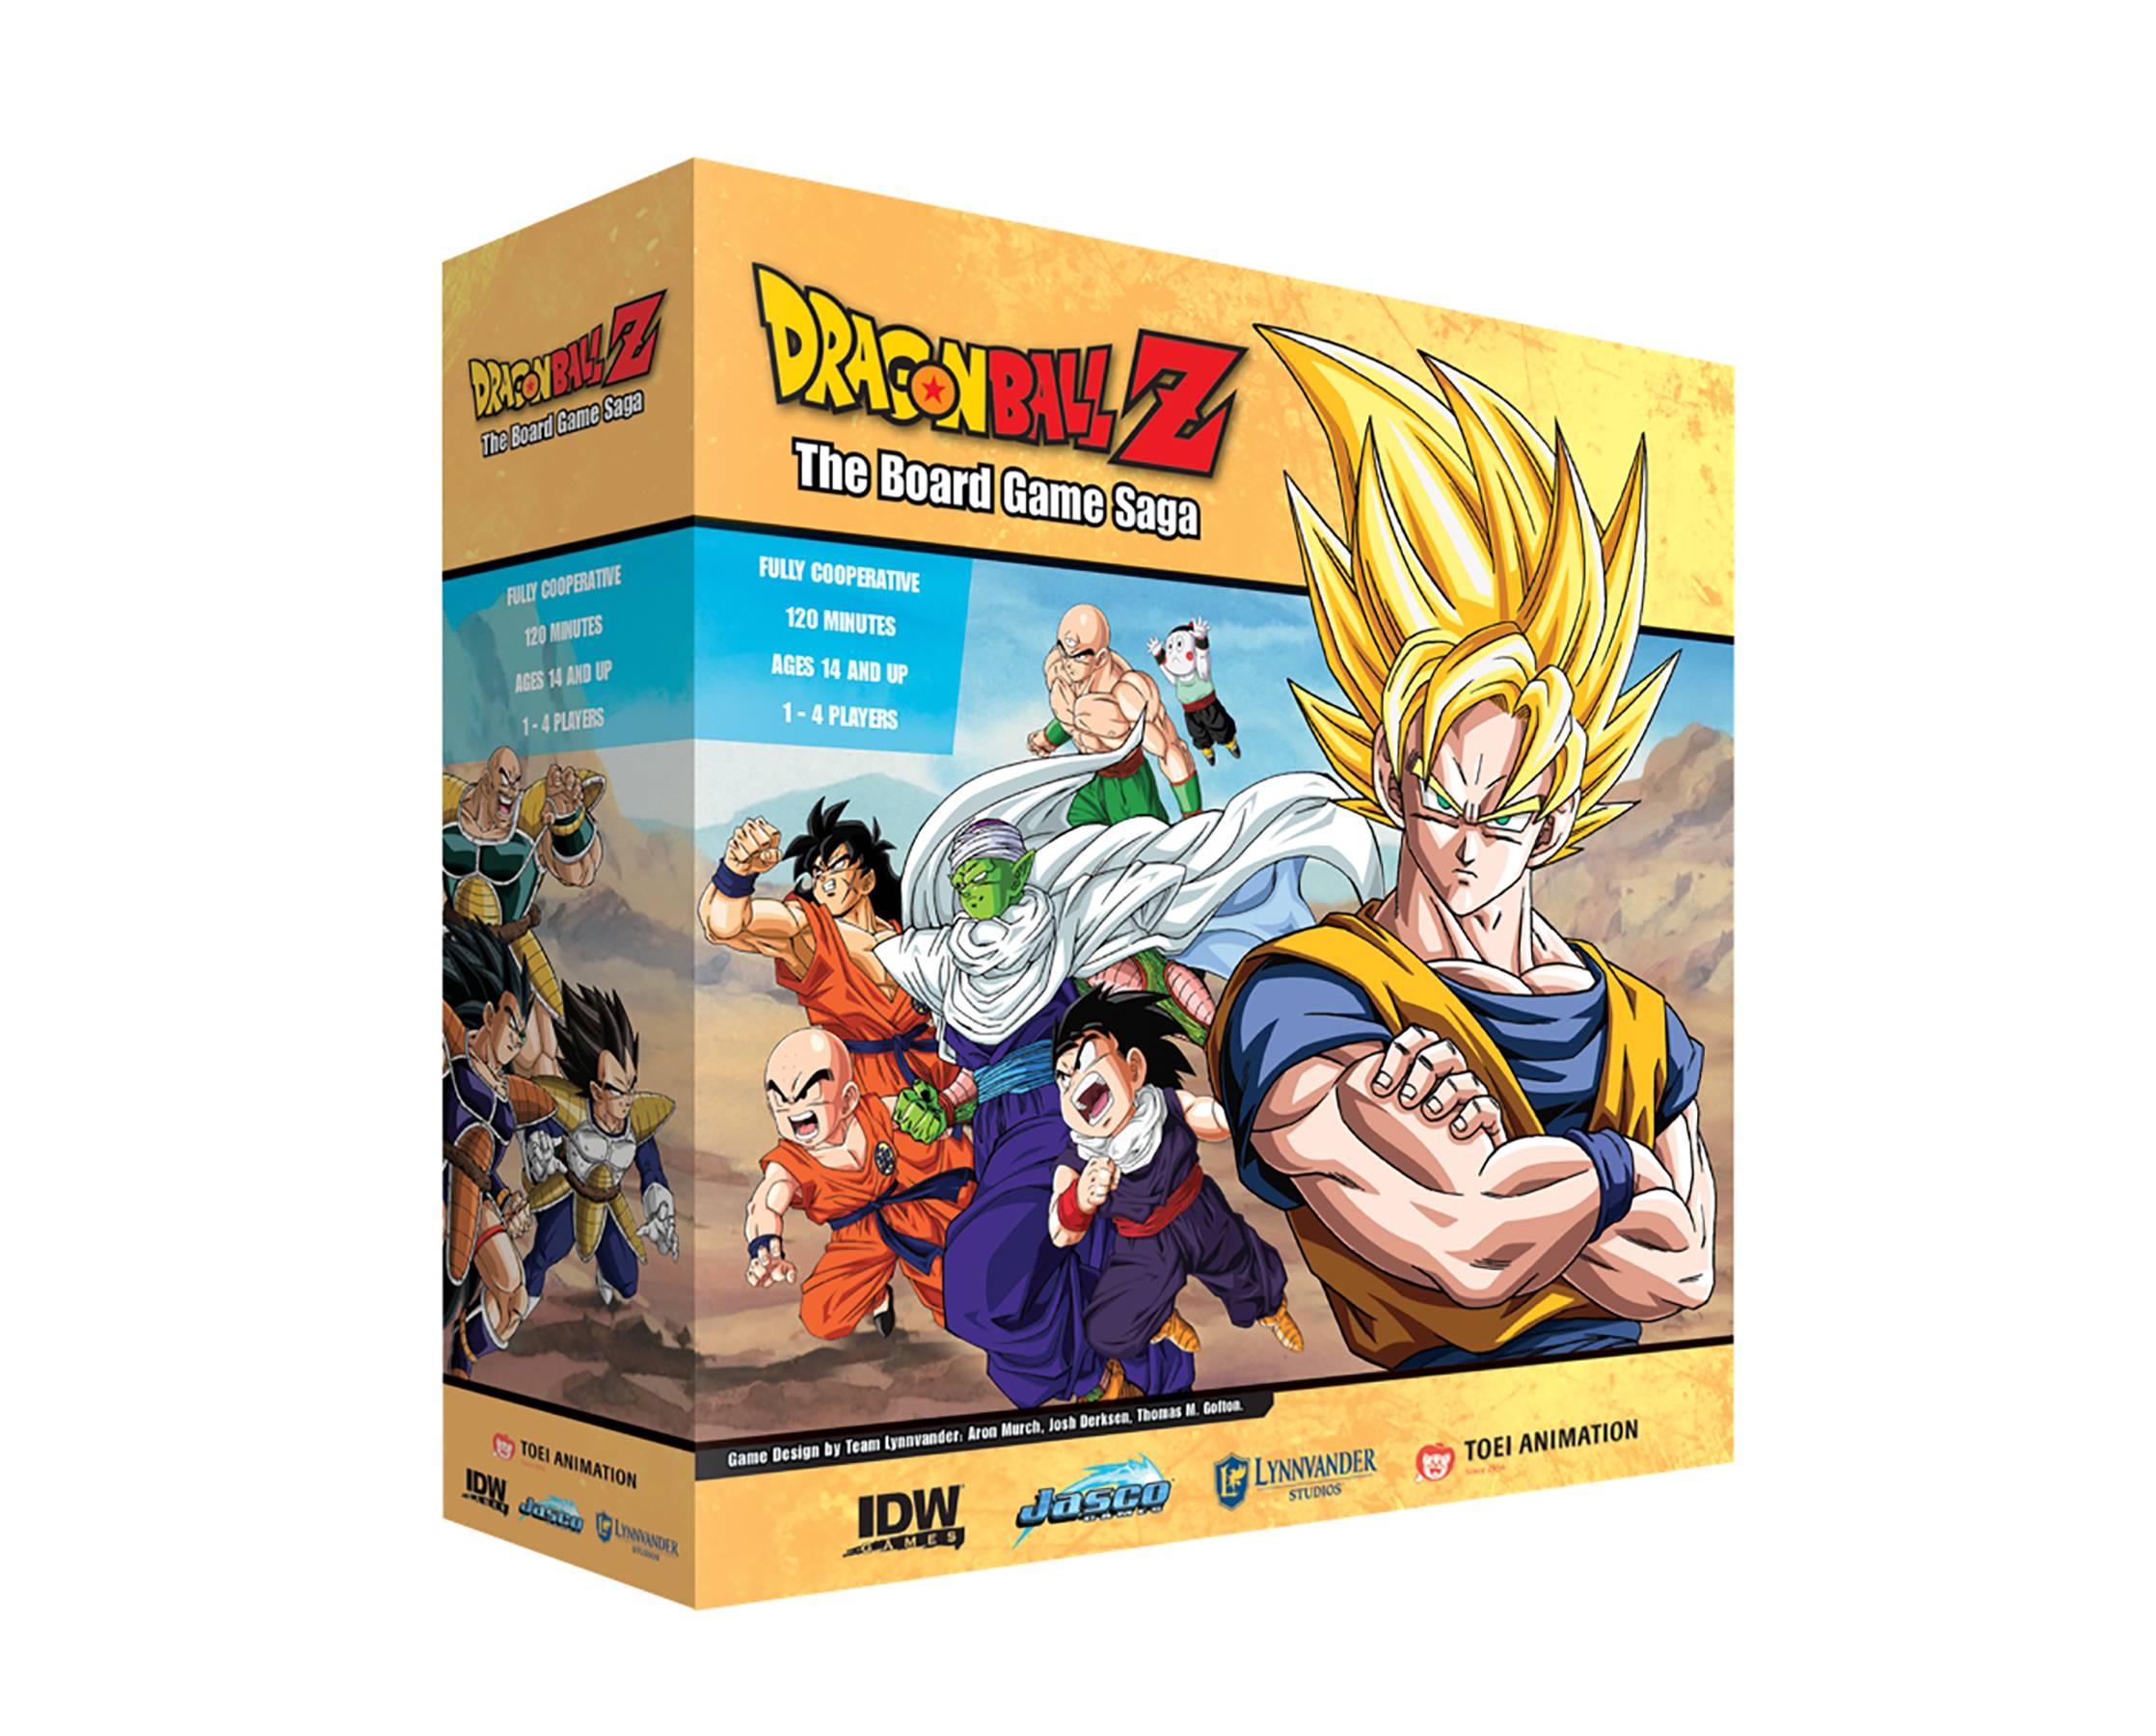 DRAGON BALL Z BOARD GAME SAGA